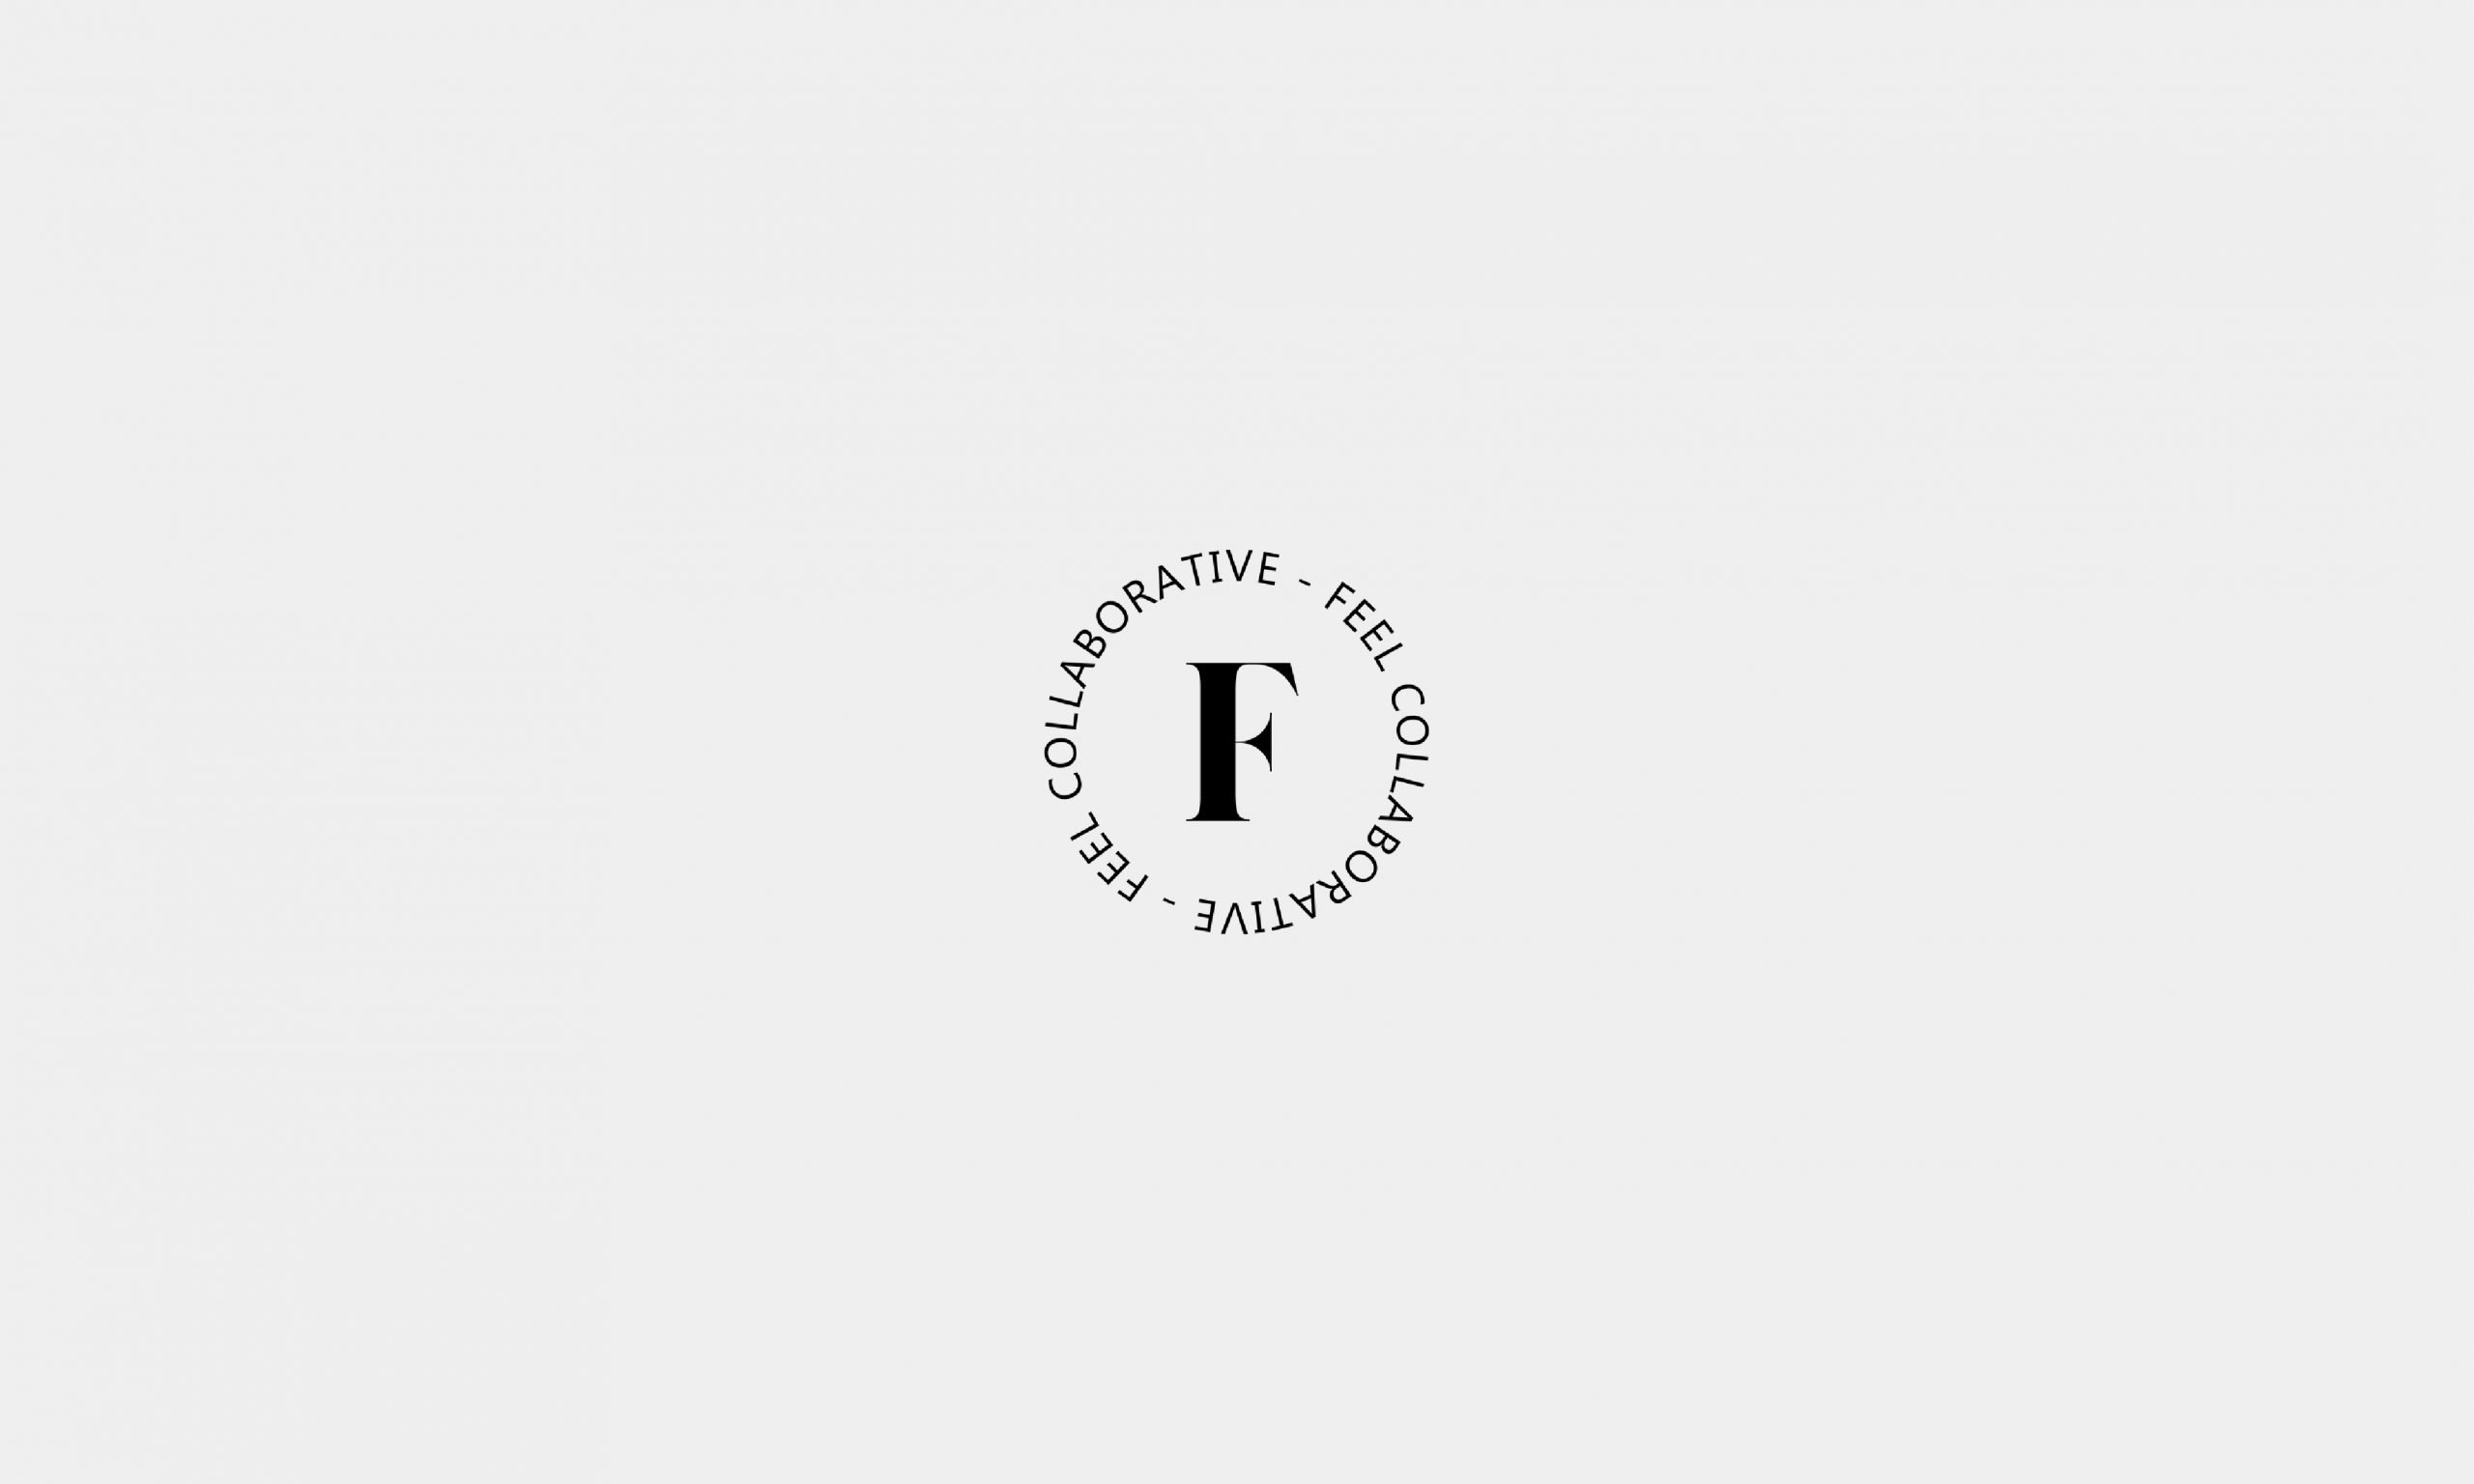 feel-collaborative-womens-community-website-development-melbourne